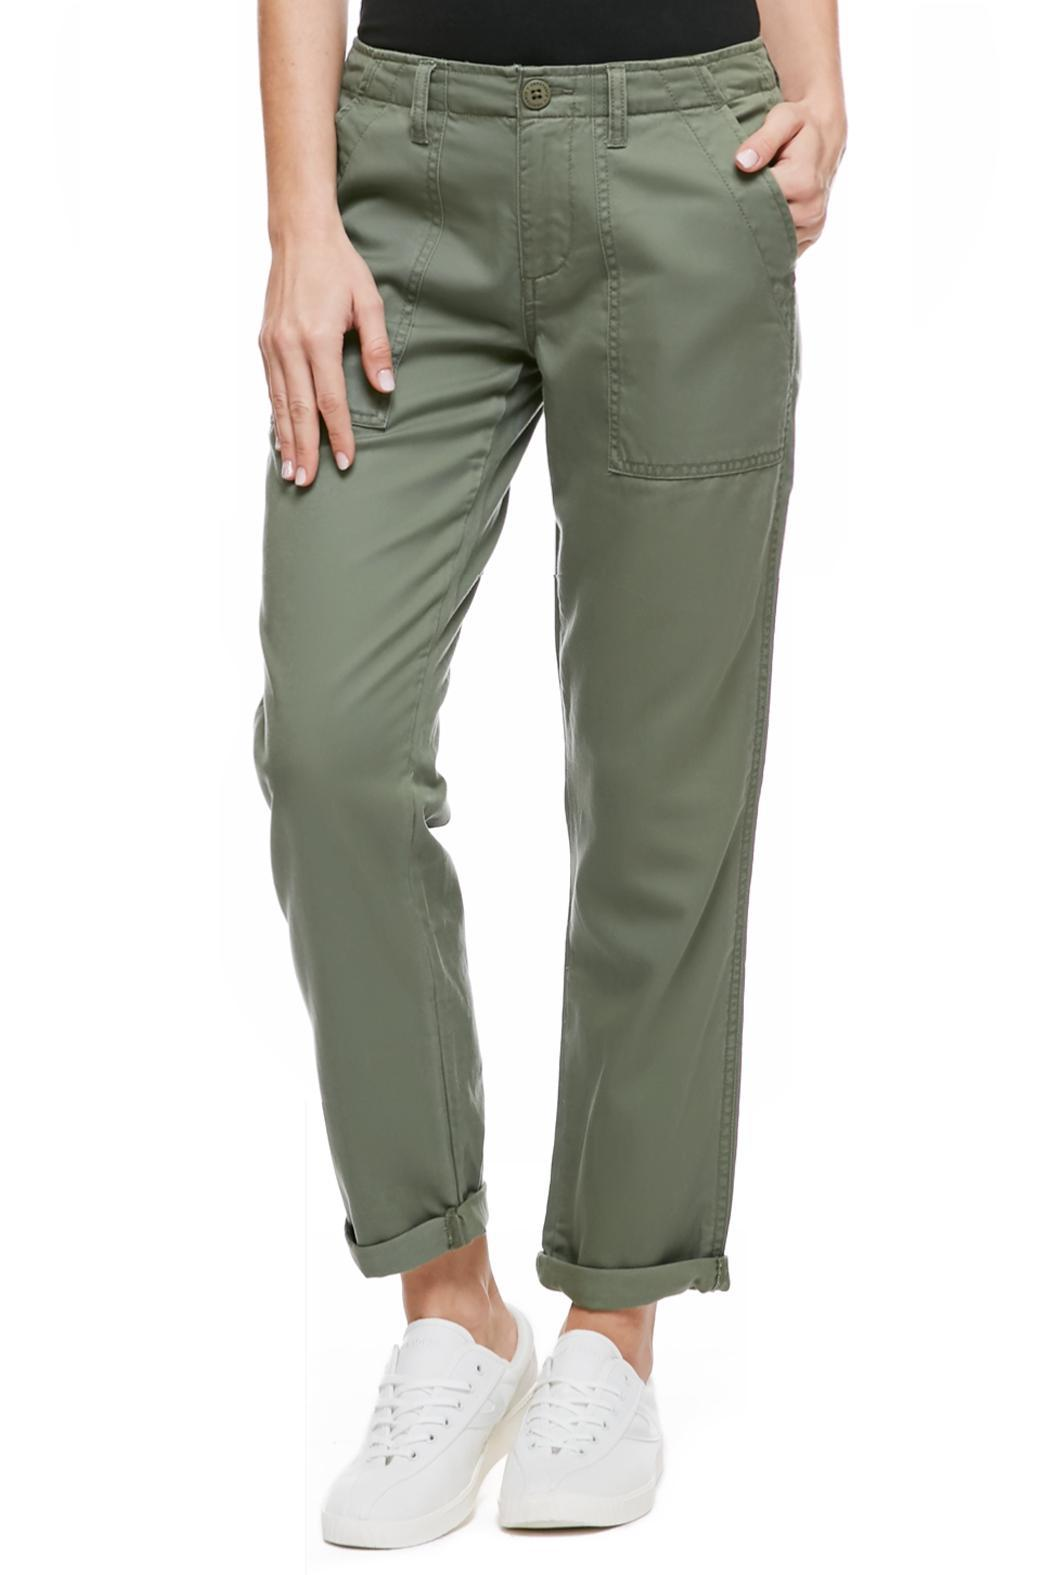 Sanctuary Army Pant from California by pinkadot — Shoptiques